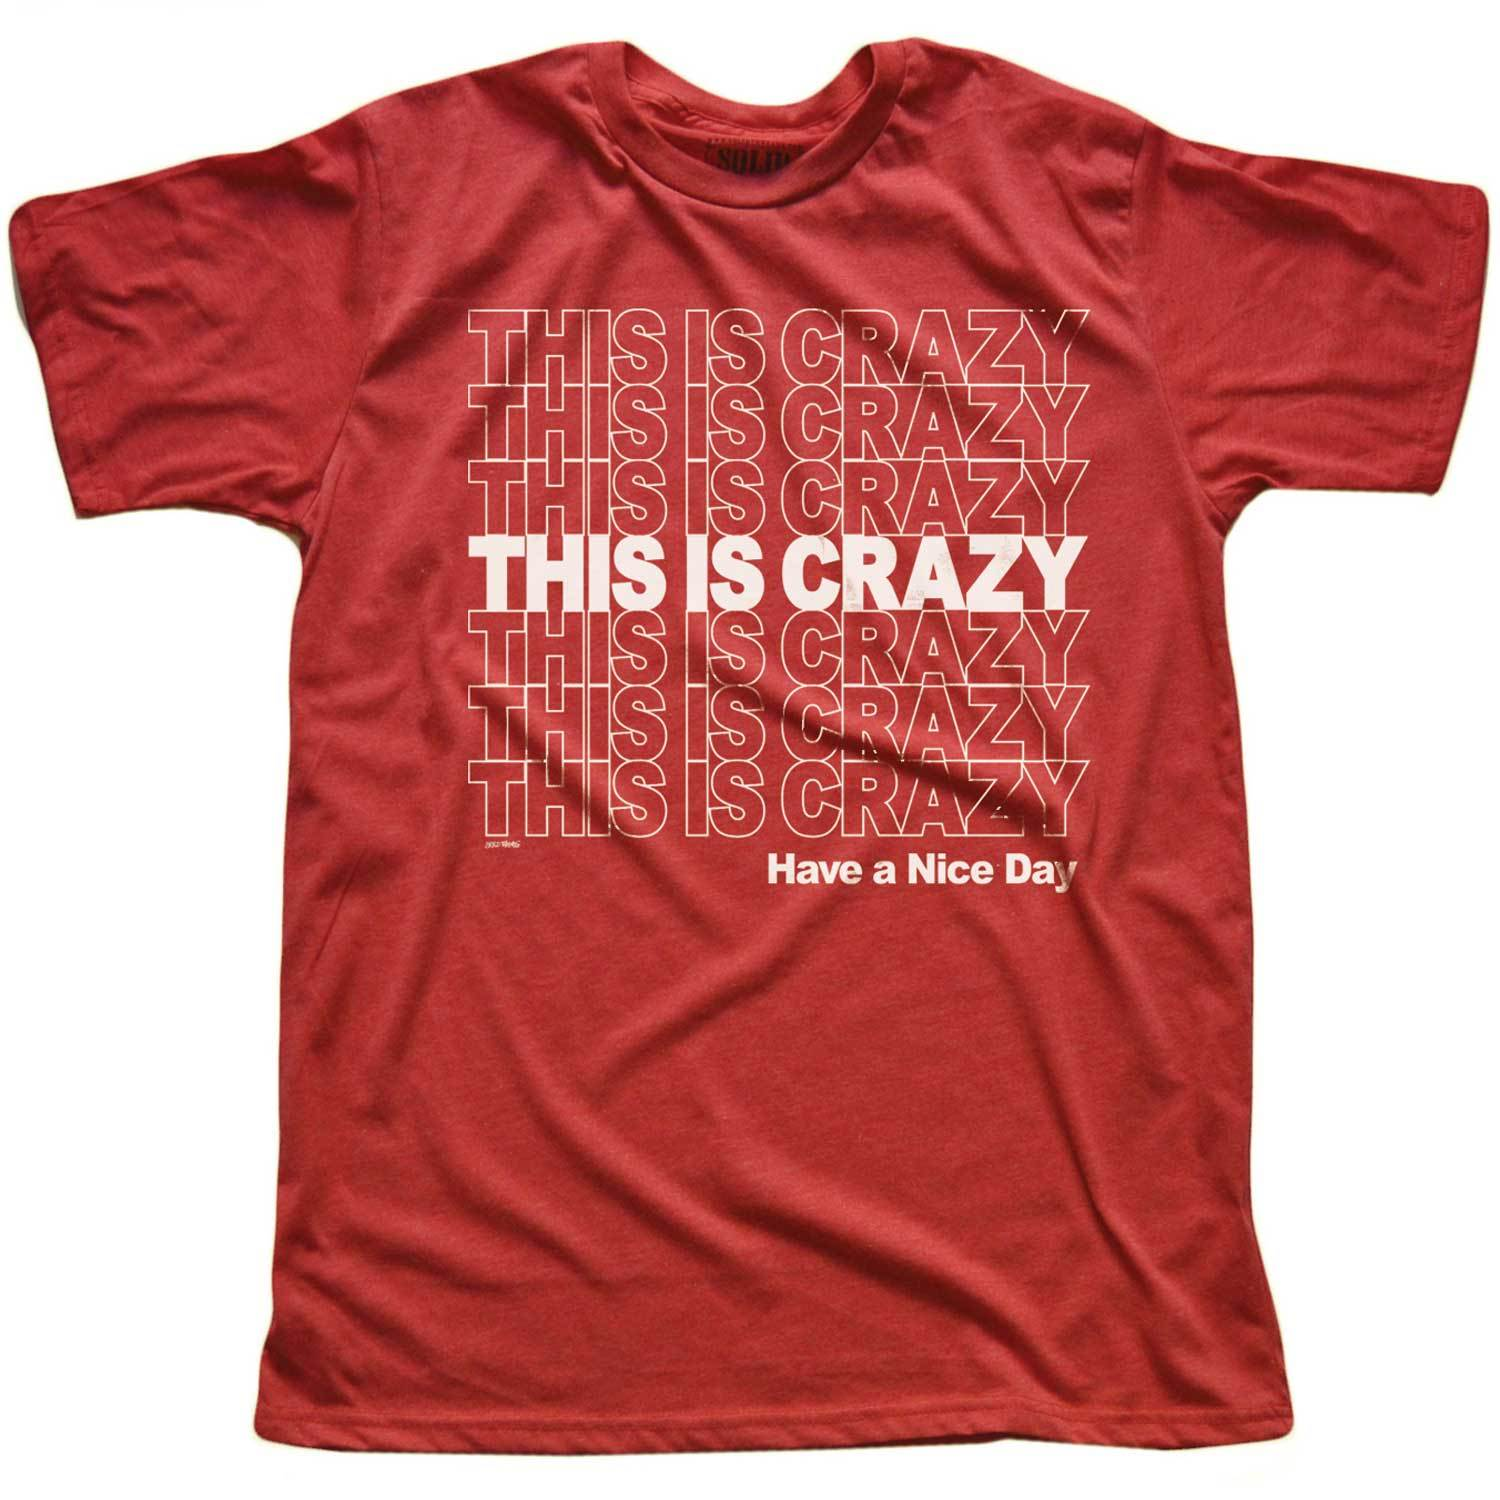 Men's This is Crazy, Have a Nice Day Vintage Inspired tee-shirt with cool, pop culture graphic | Solid Threads